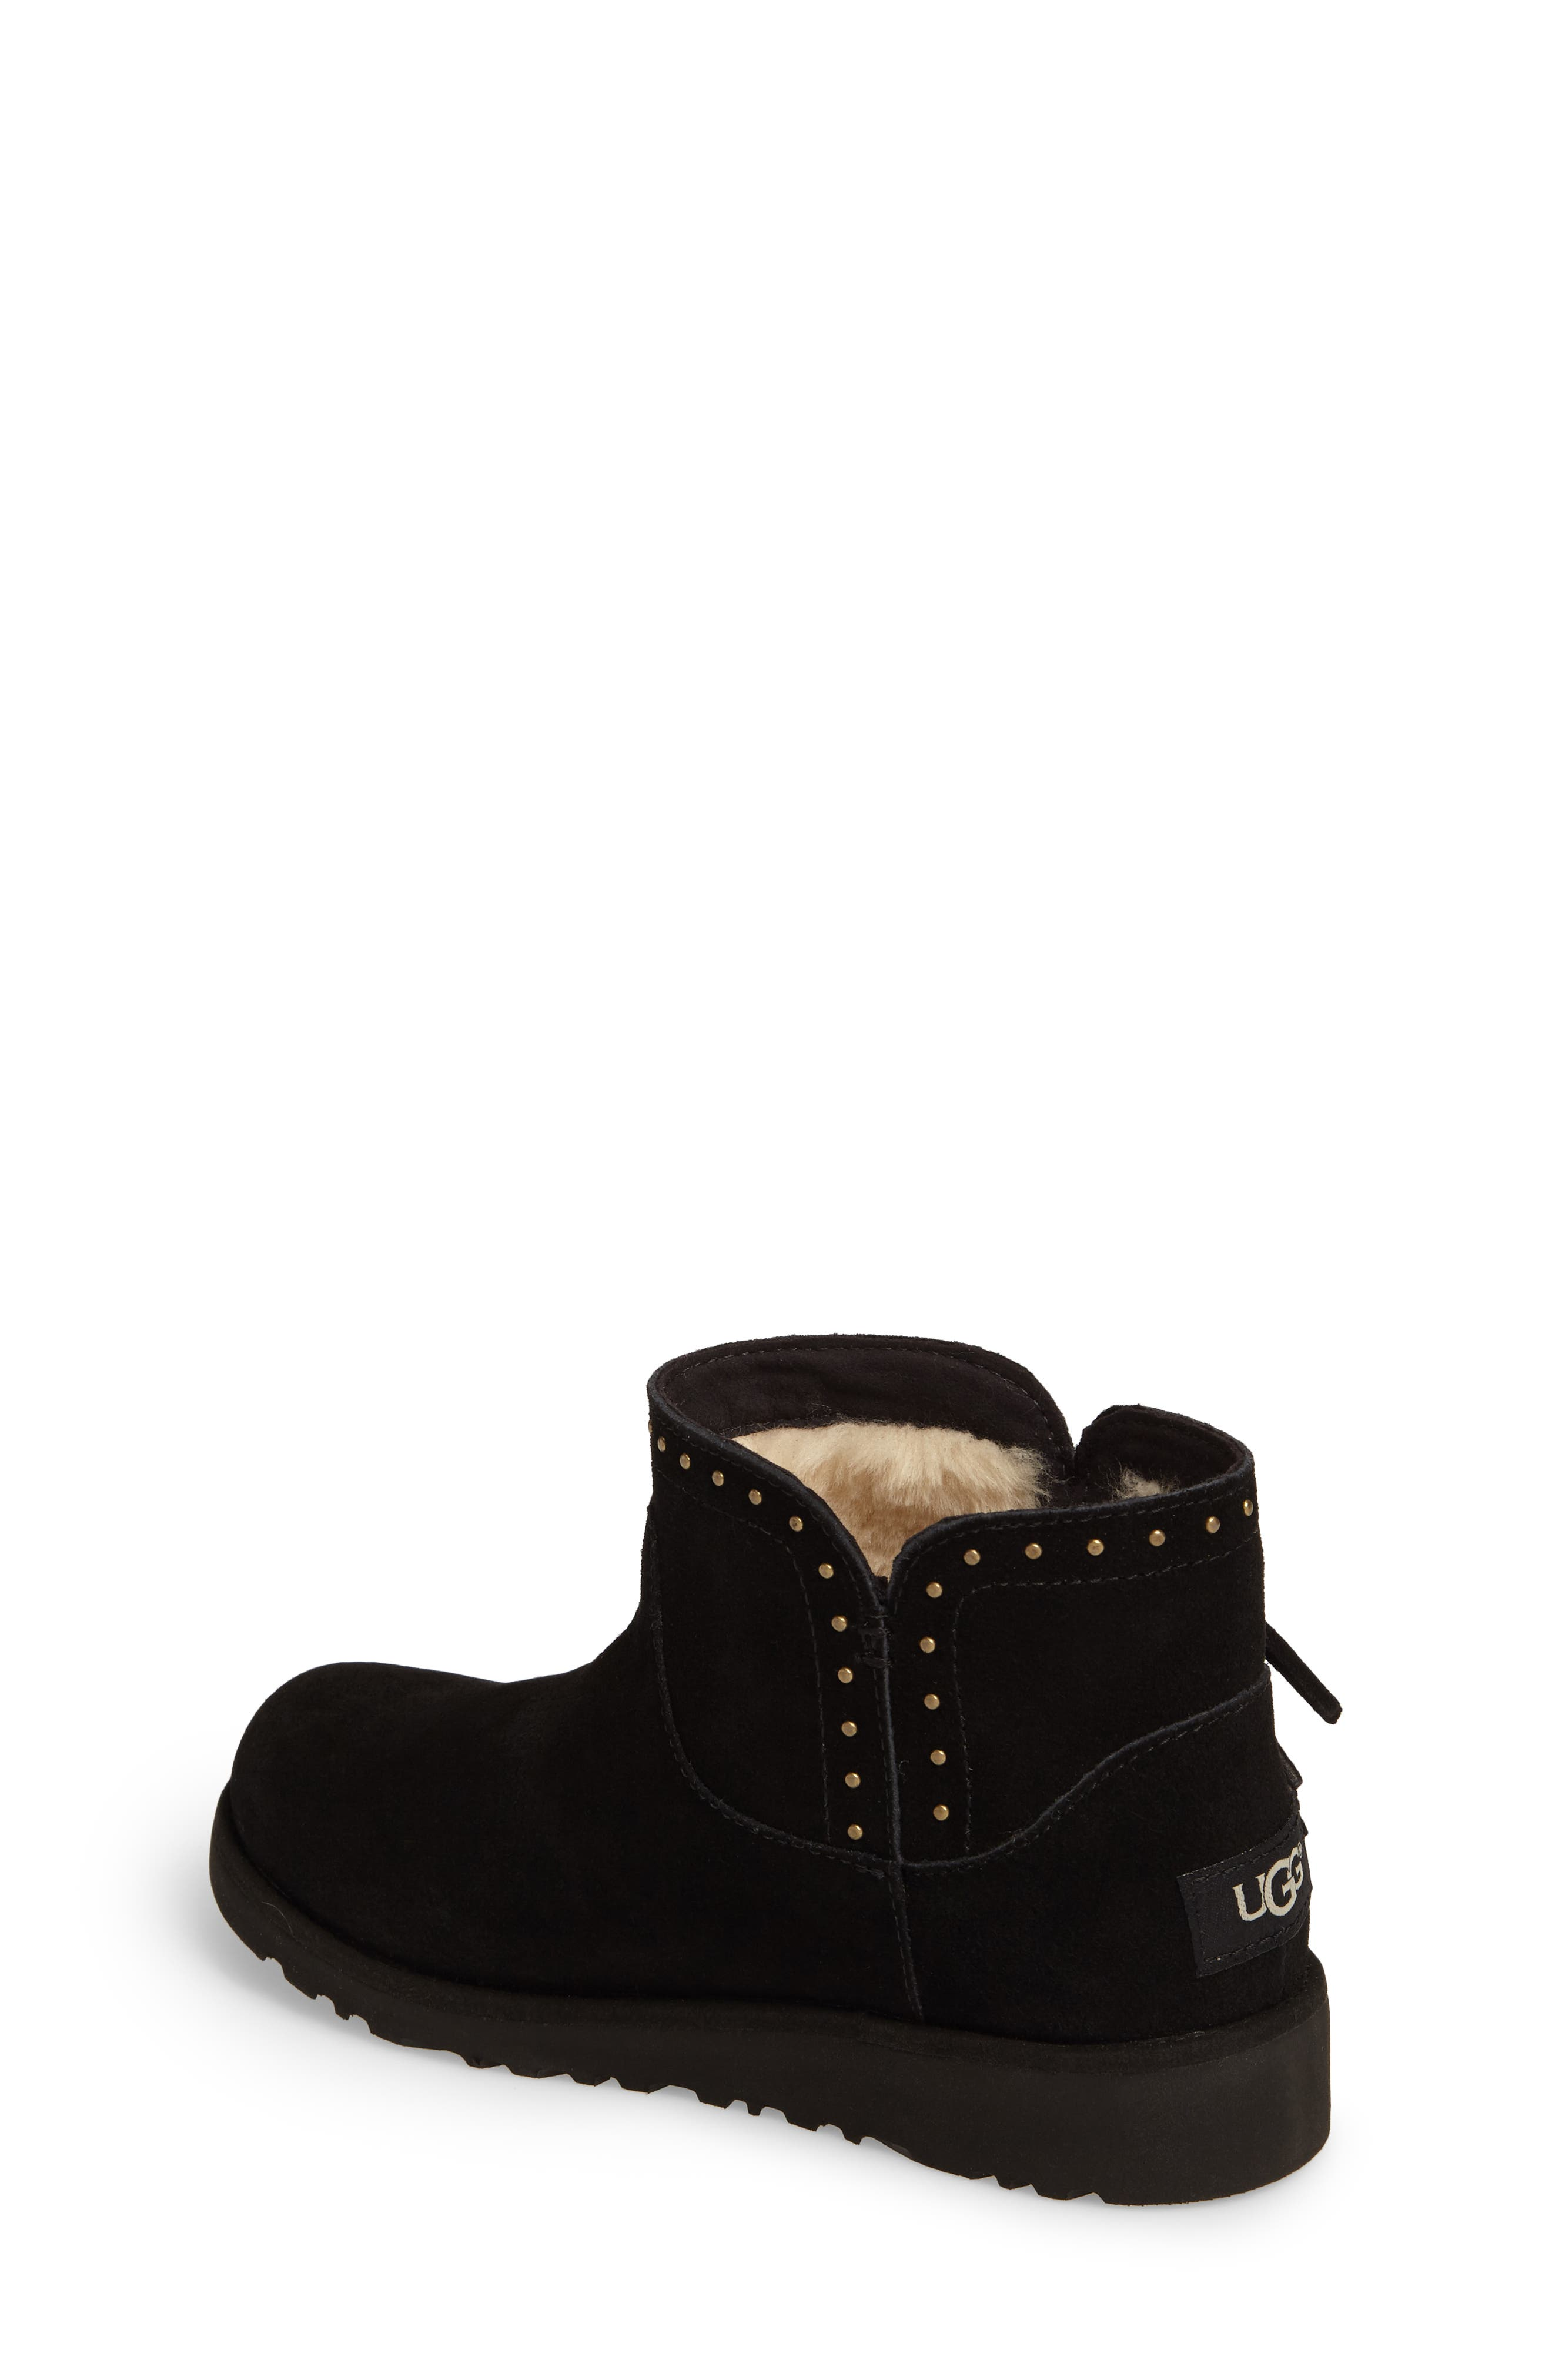 Cindy Water-Resistant Genuine Shearling Studded Bootie,                             Alternate thumbnail 2, color,                             001